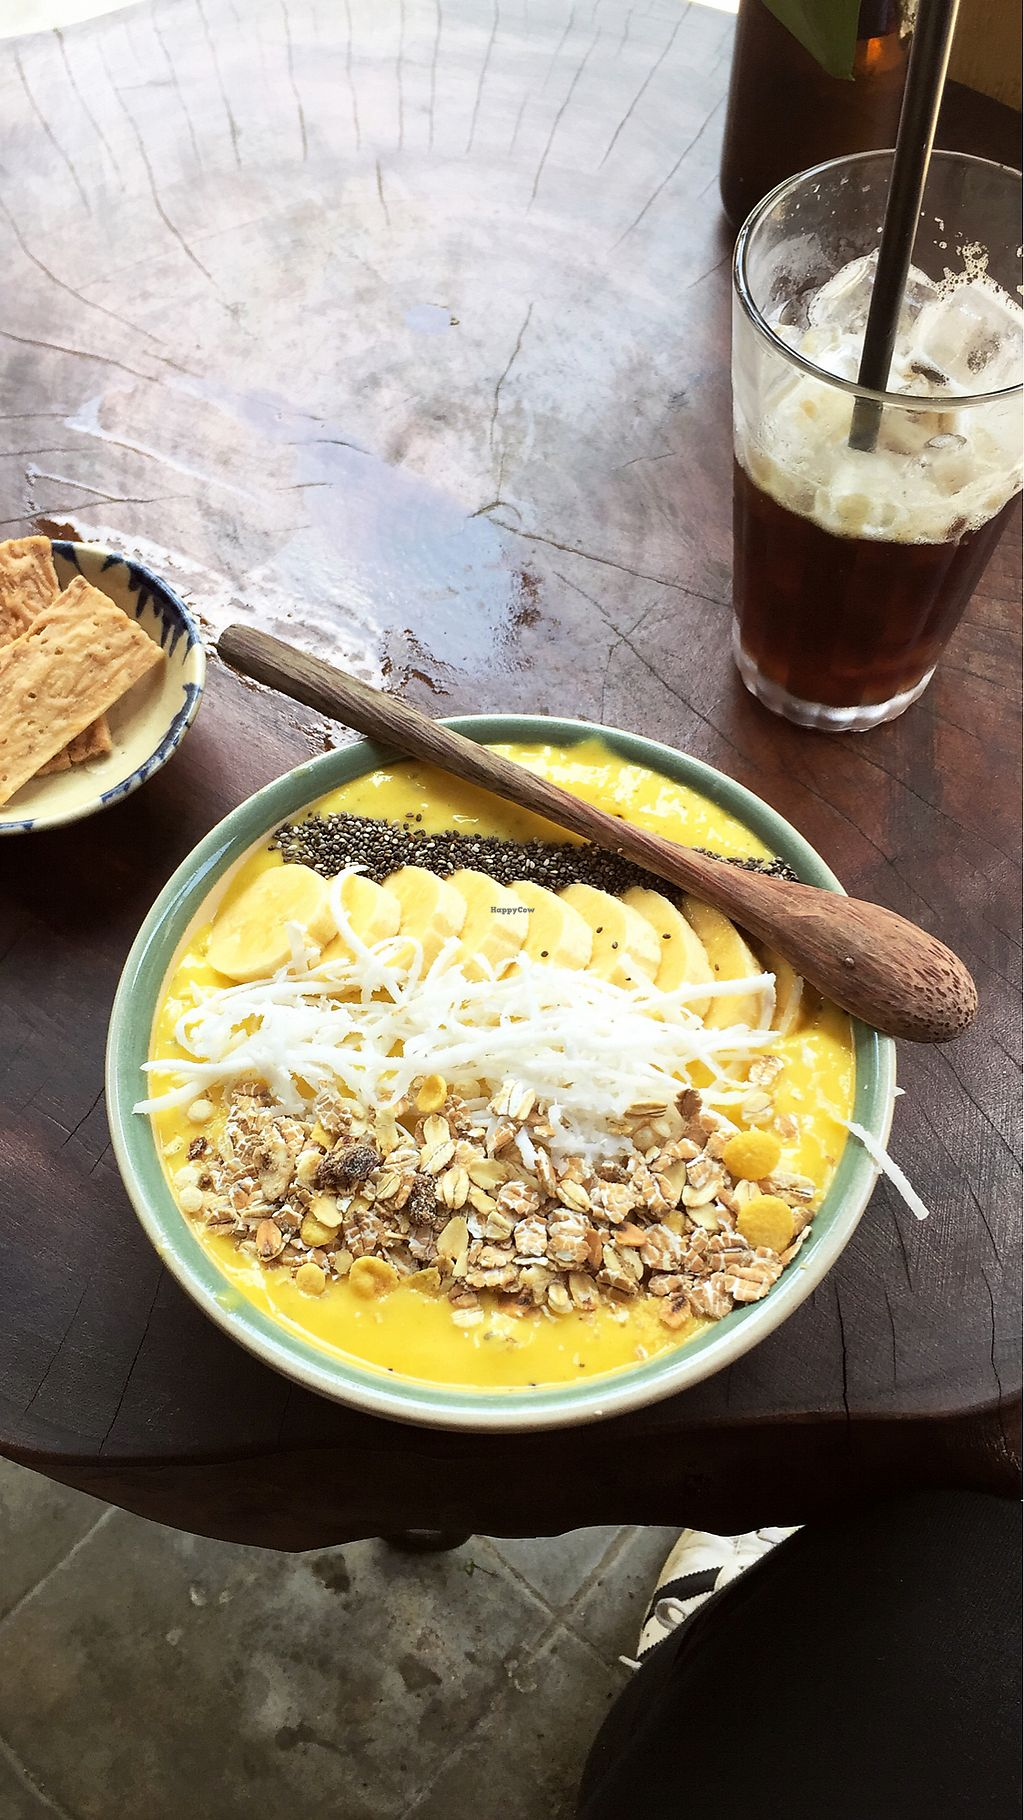 """Photo of Rosie's Cafe  by <a href=""""/members/profile/AmandaKelly"""">AmandaKelly</a> <br/>Banana mango smoothie bowl & iced coffee  <br/> April 19, 2018  - <a href='/contact/abuse/image/77938/387986'>Report</a>"""